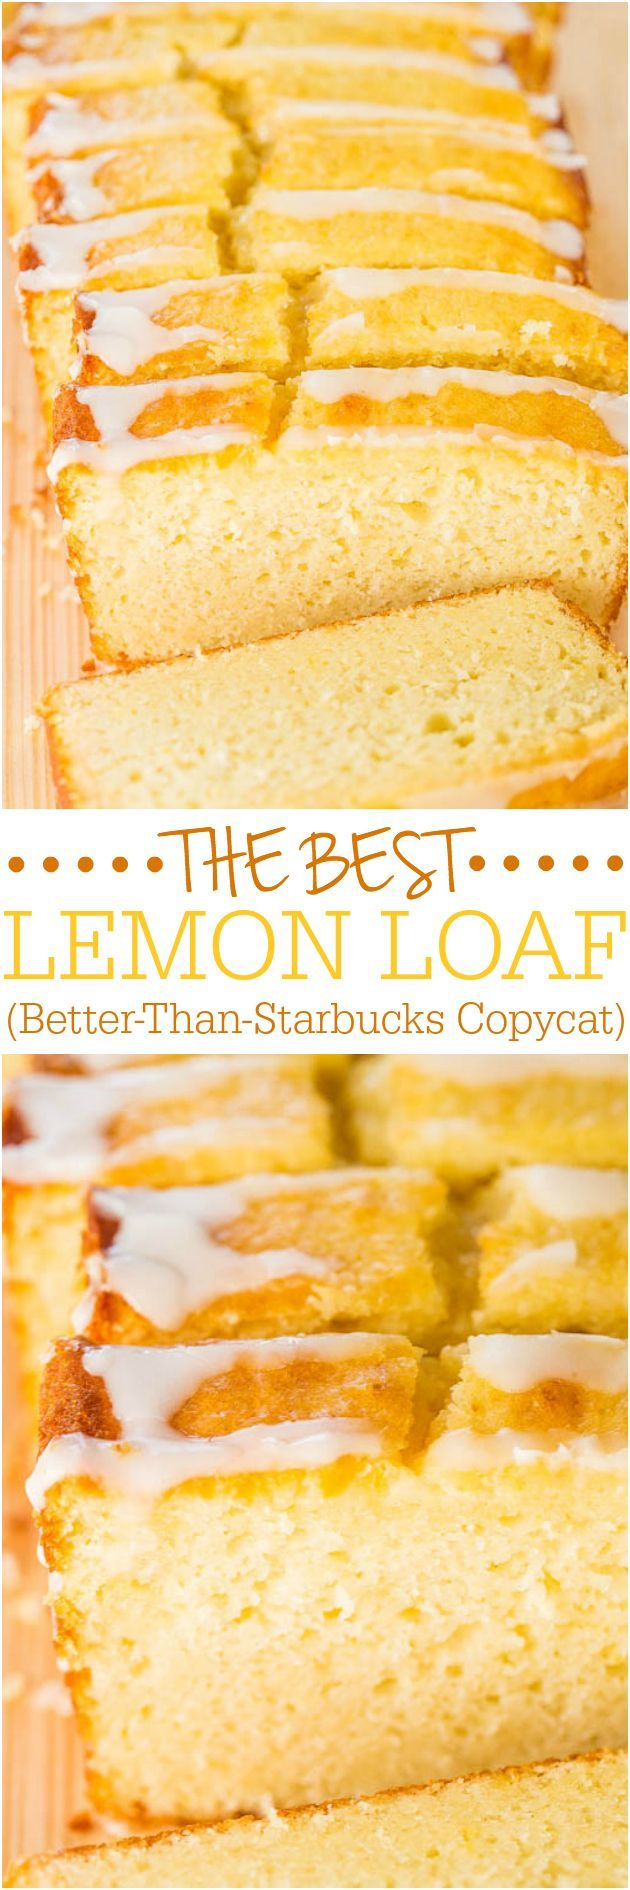 The Best Lemon Loaf (Better-Than-Starbucks Copycat